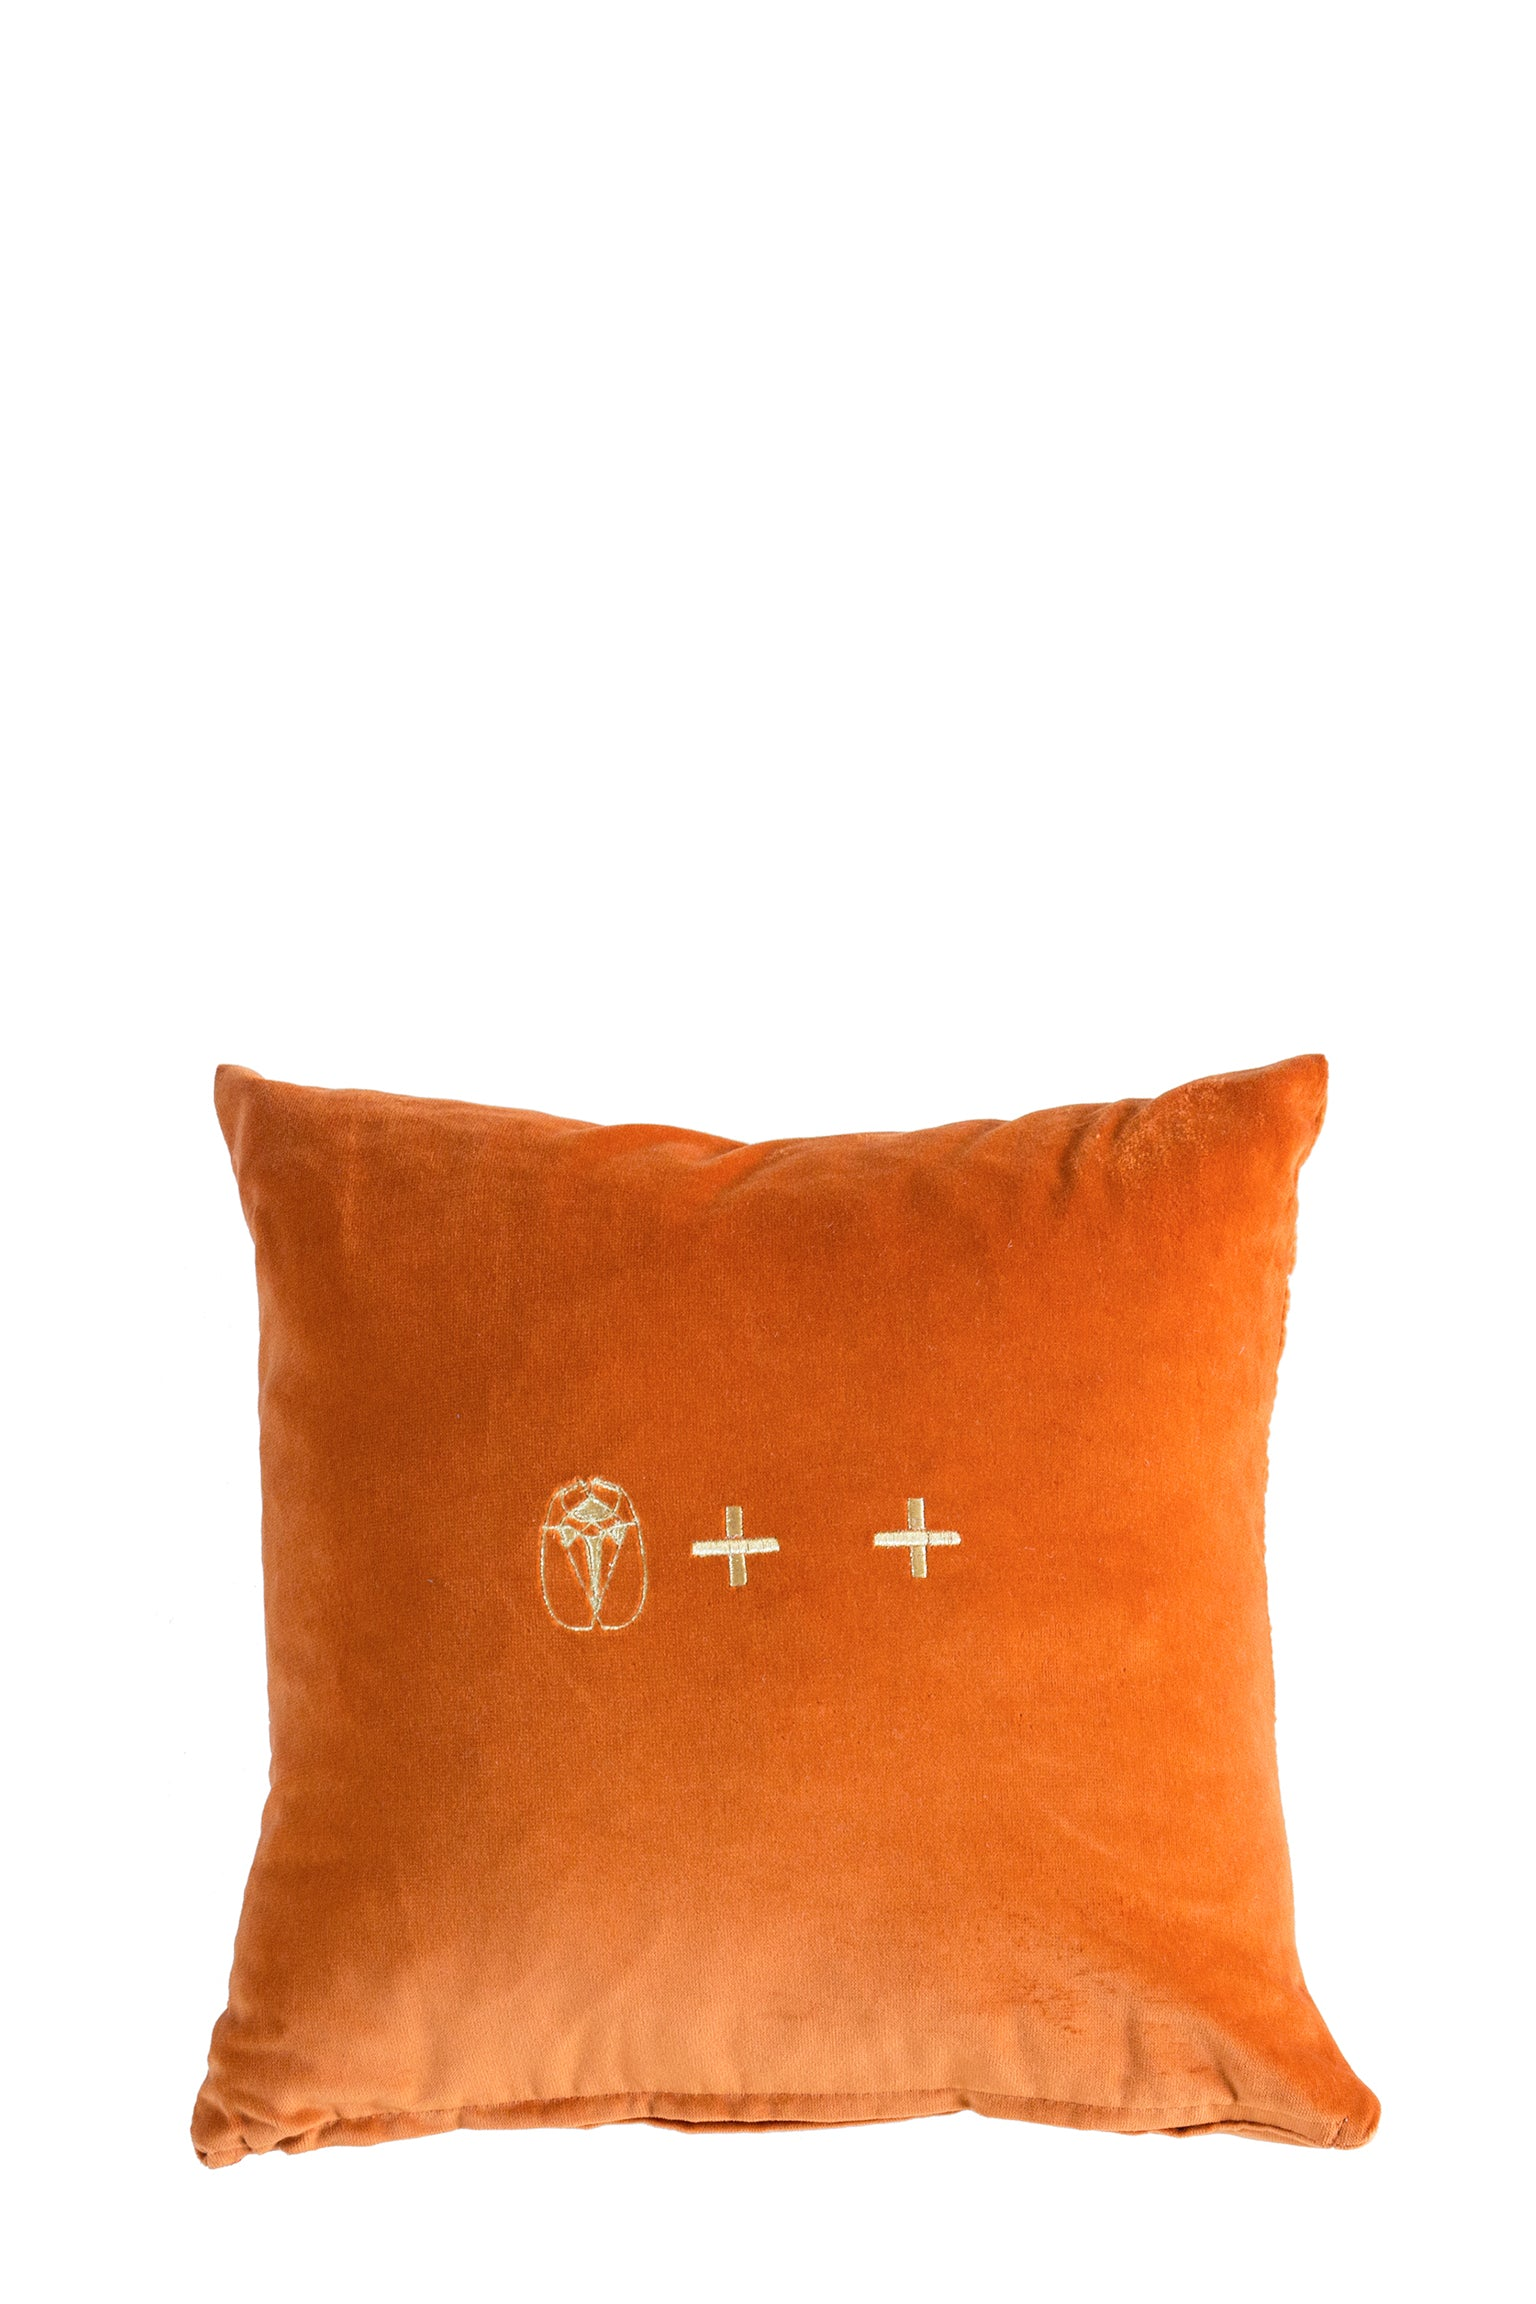 Ochre Velvet Cushion